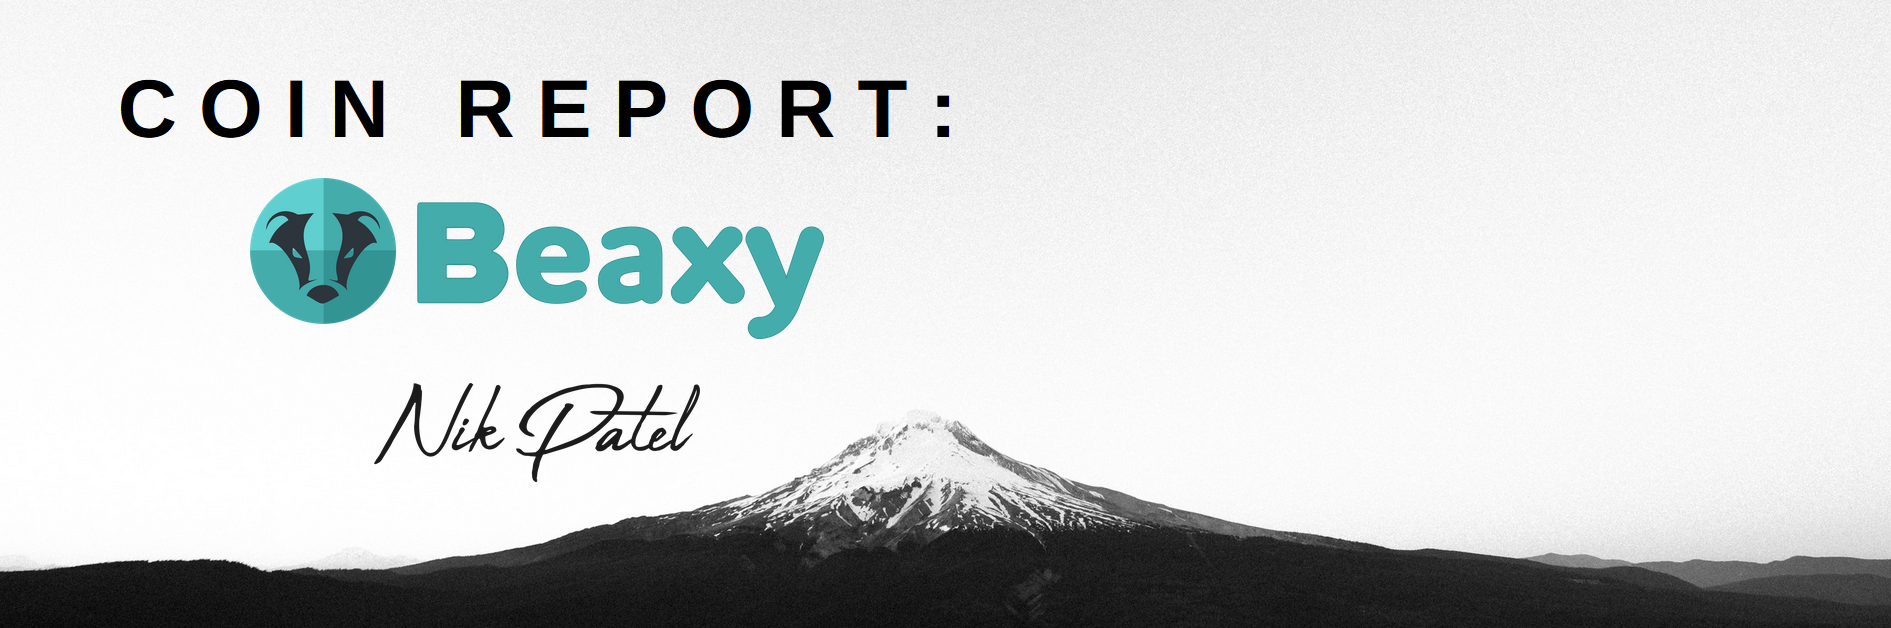 Coin Report #28: Beaxy